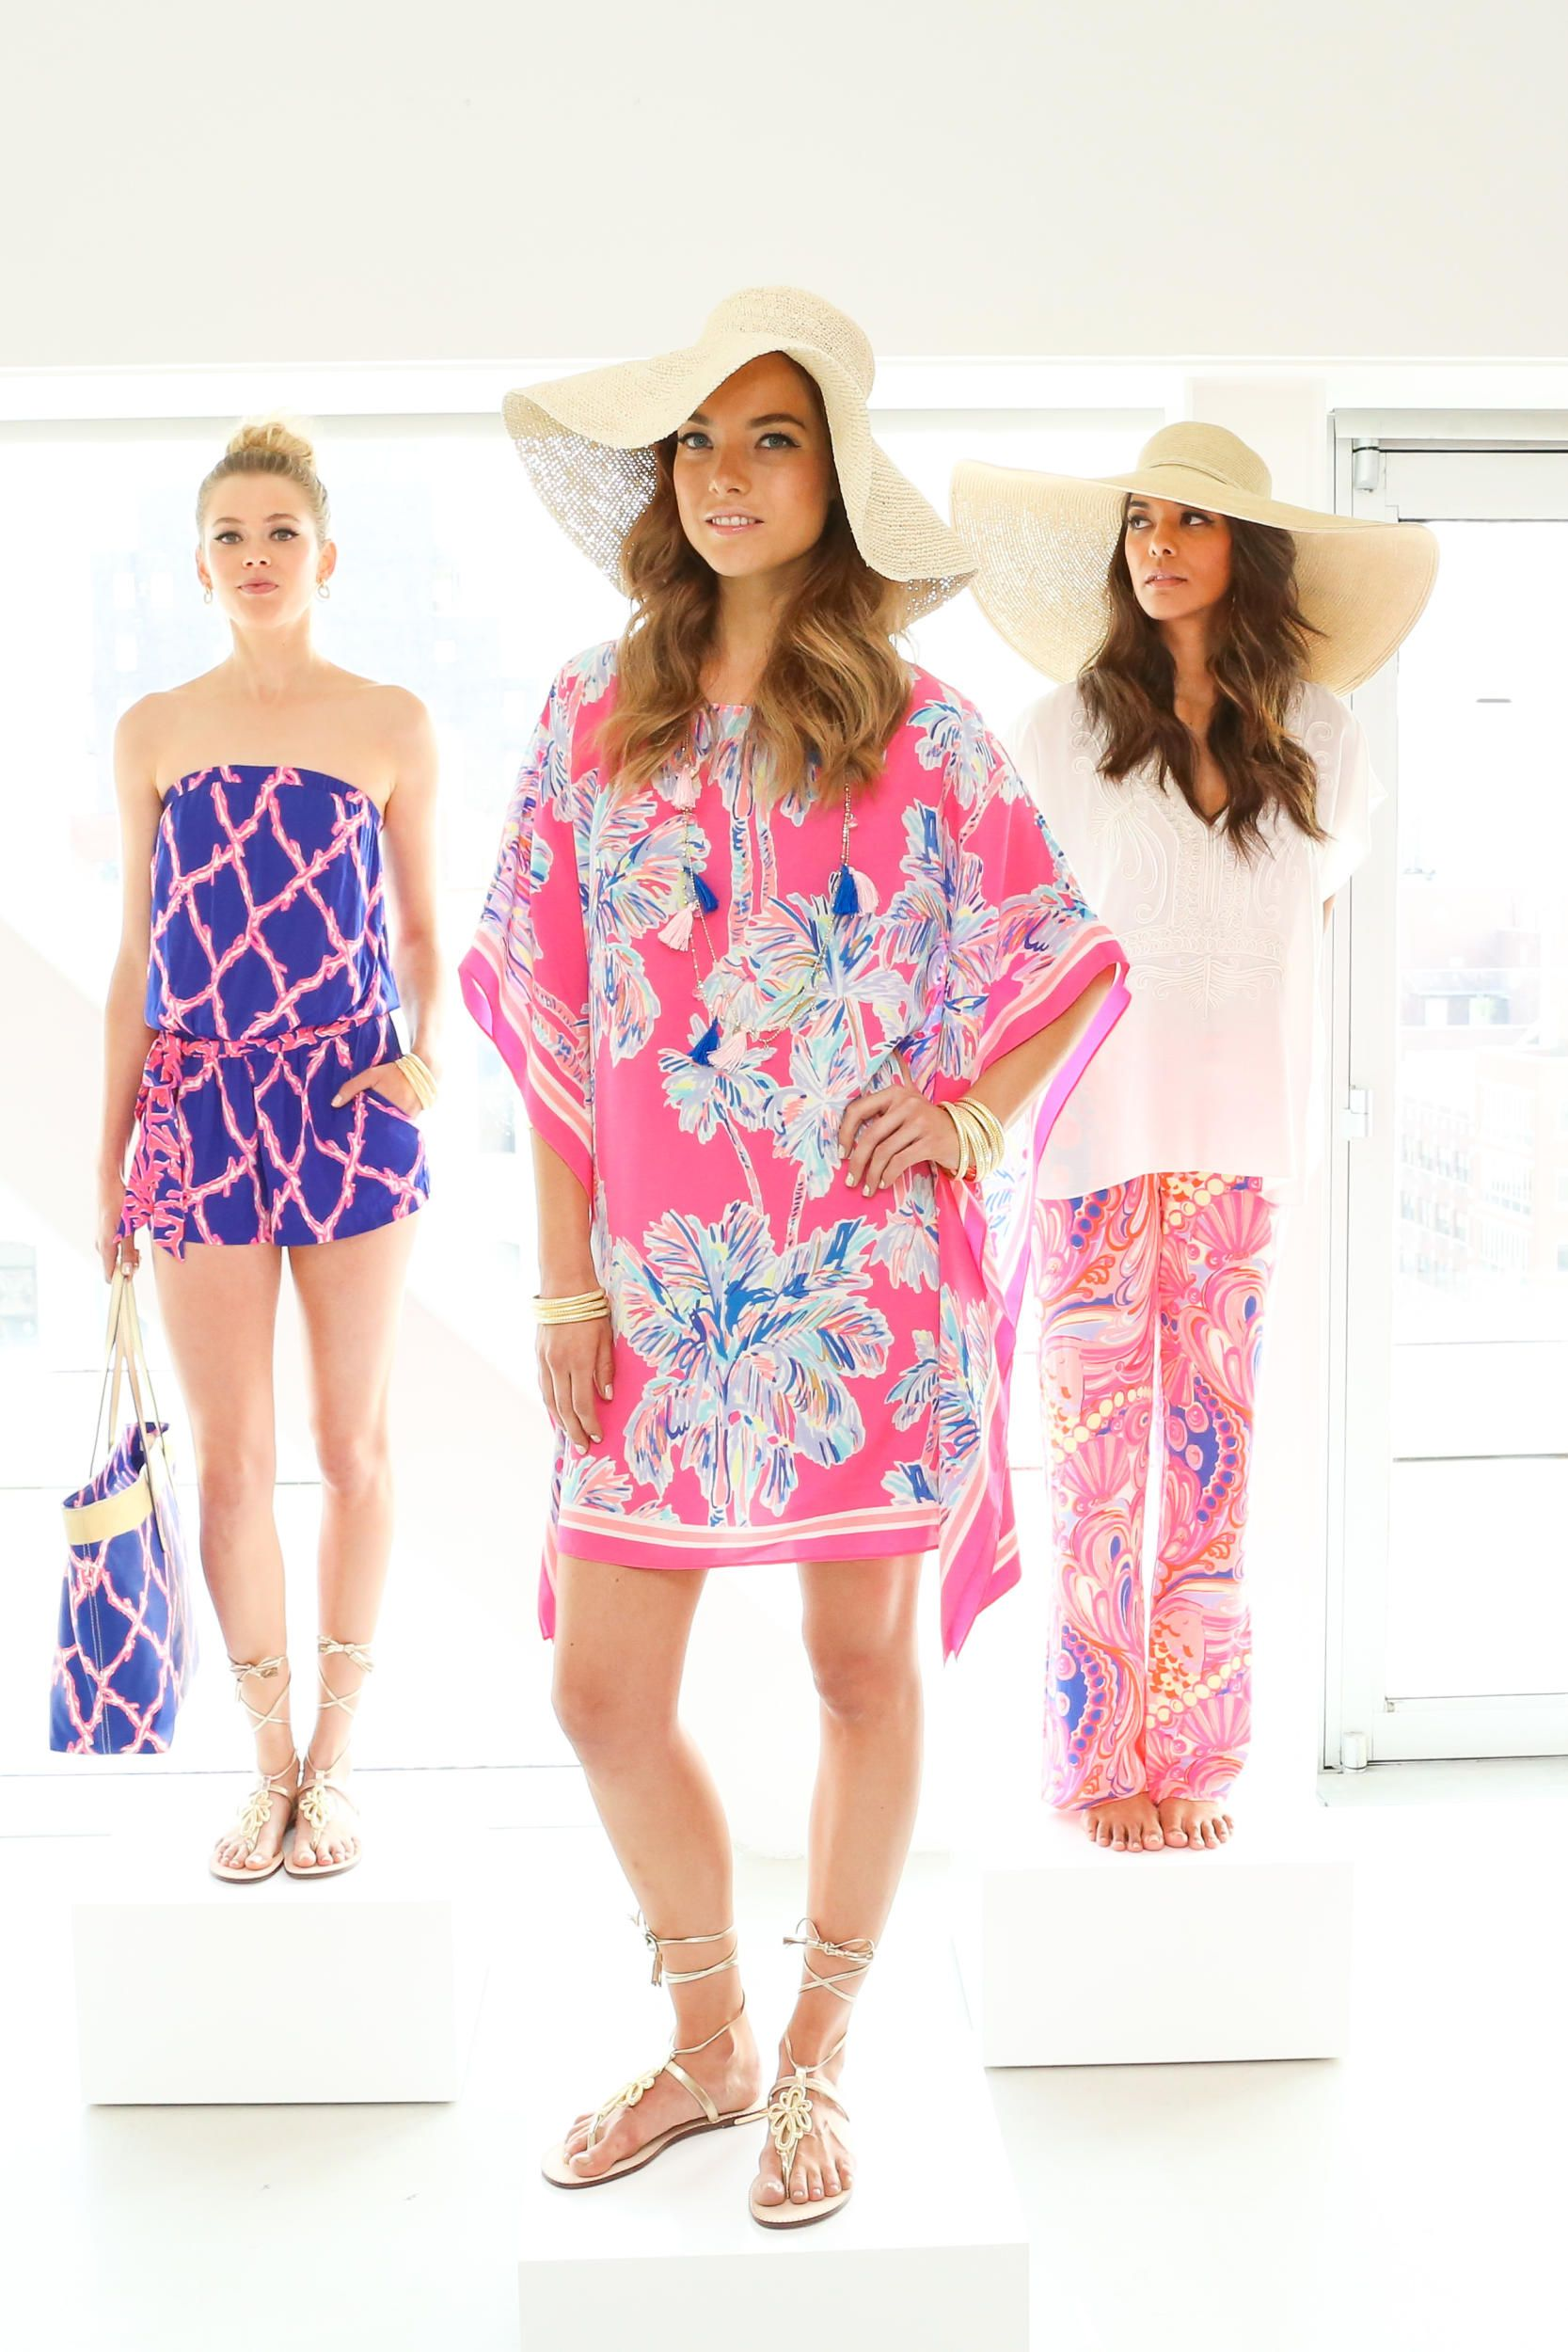 For the First Time, Lilly Pulitzer Hosts a Resort Preview